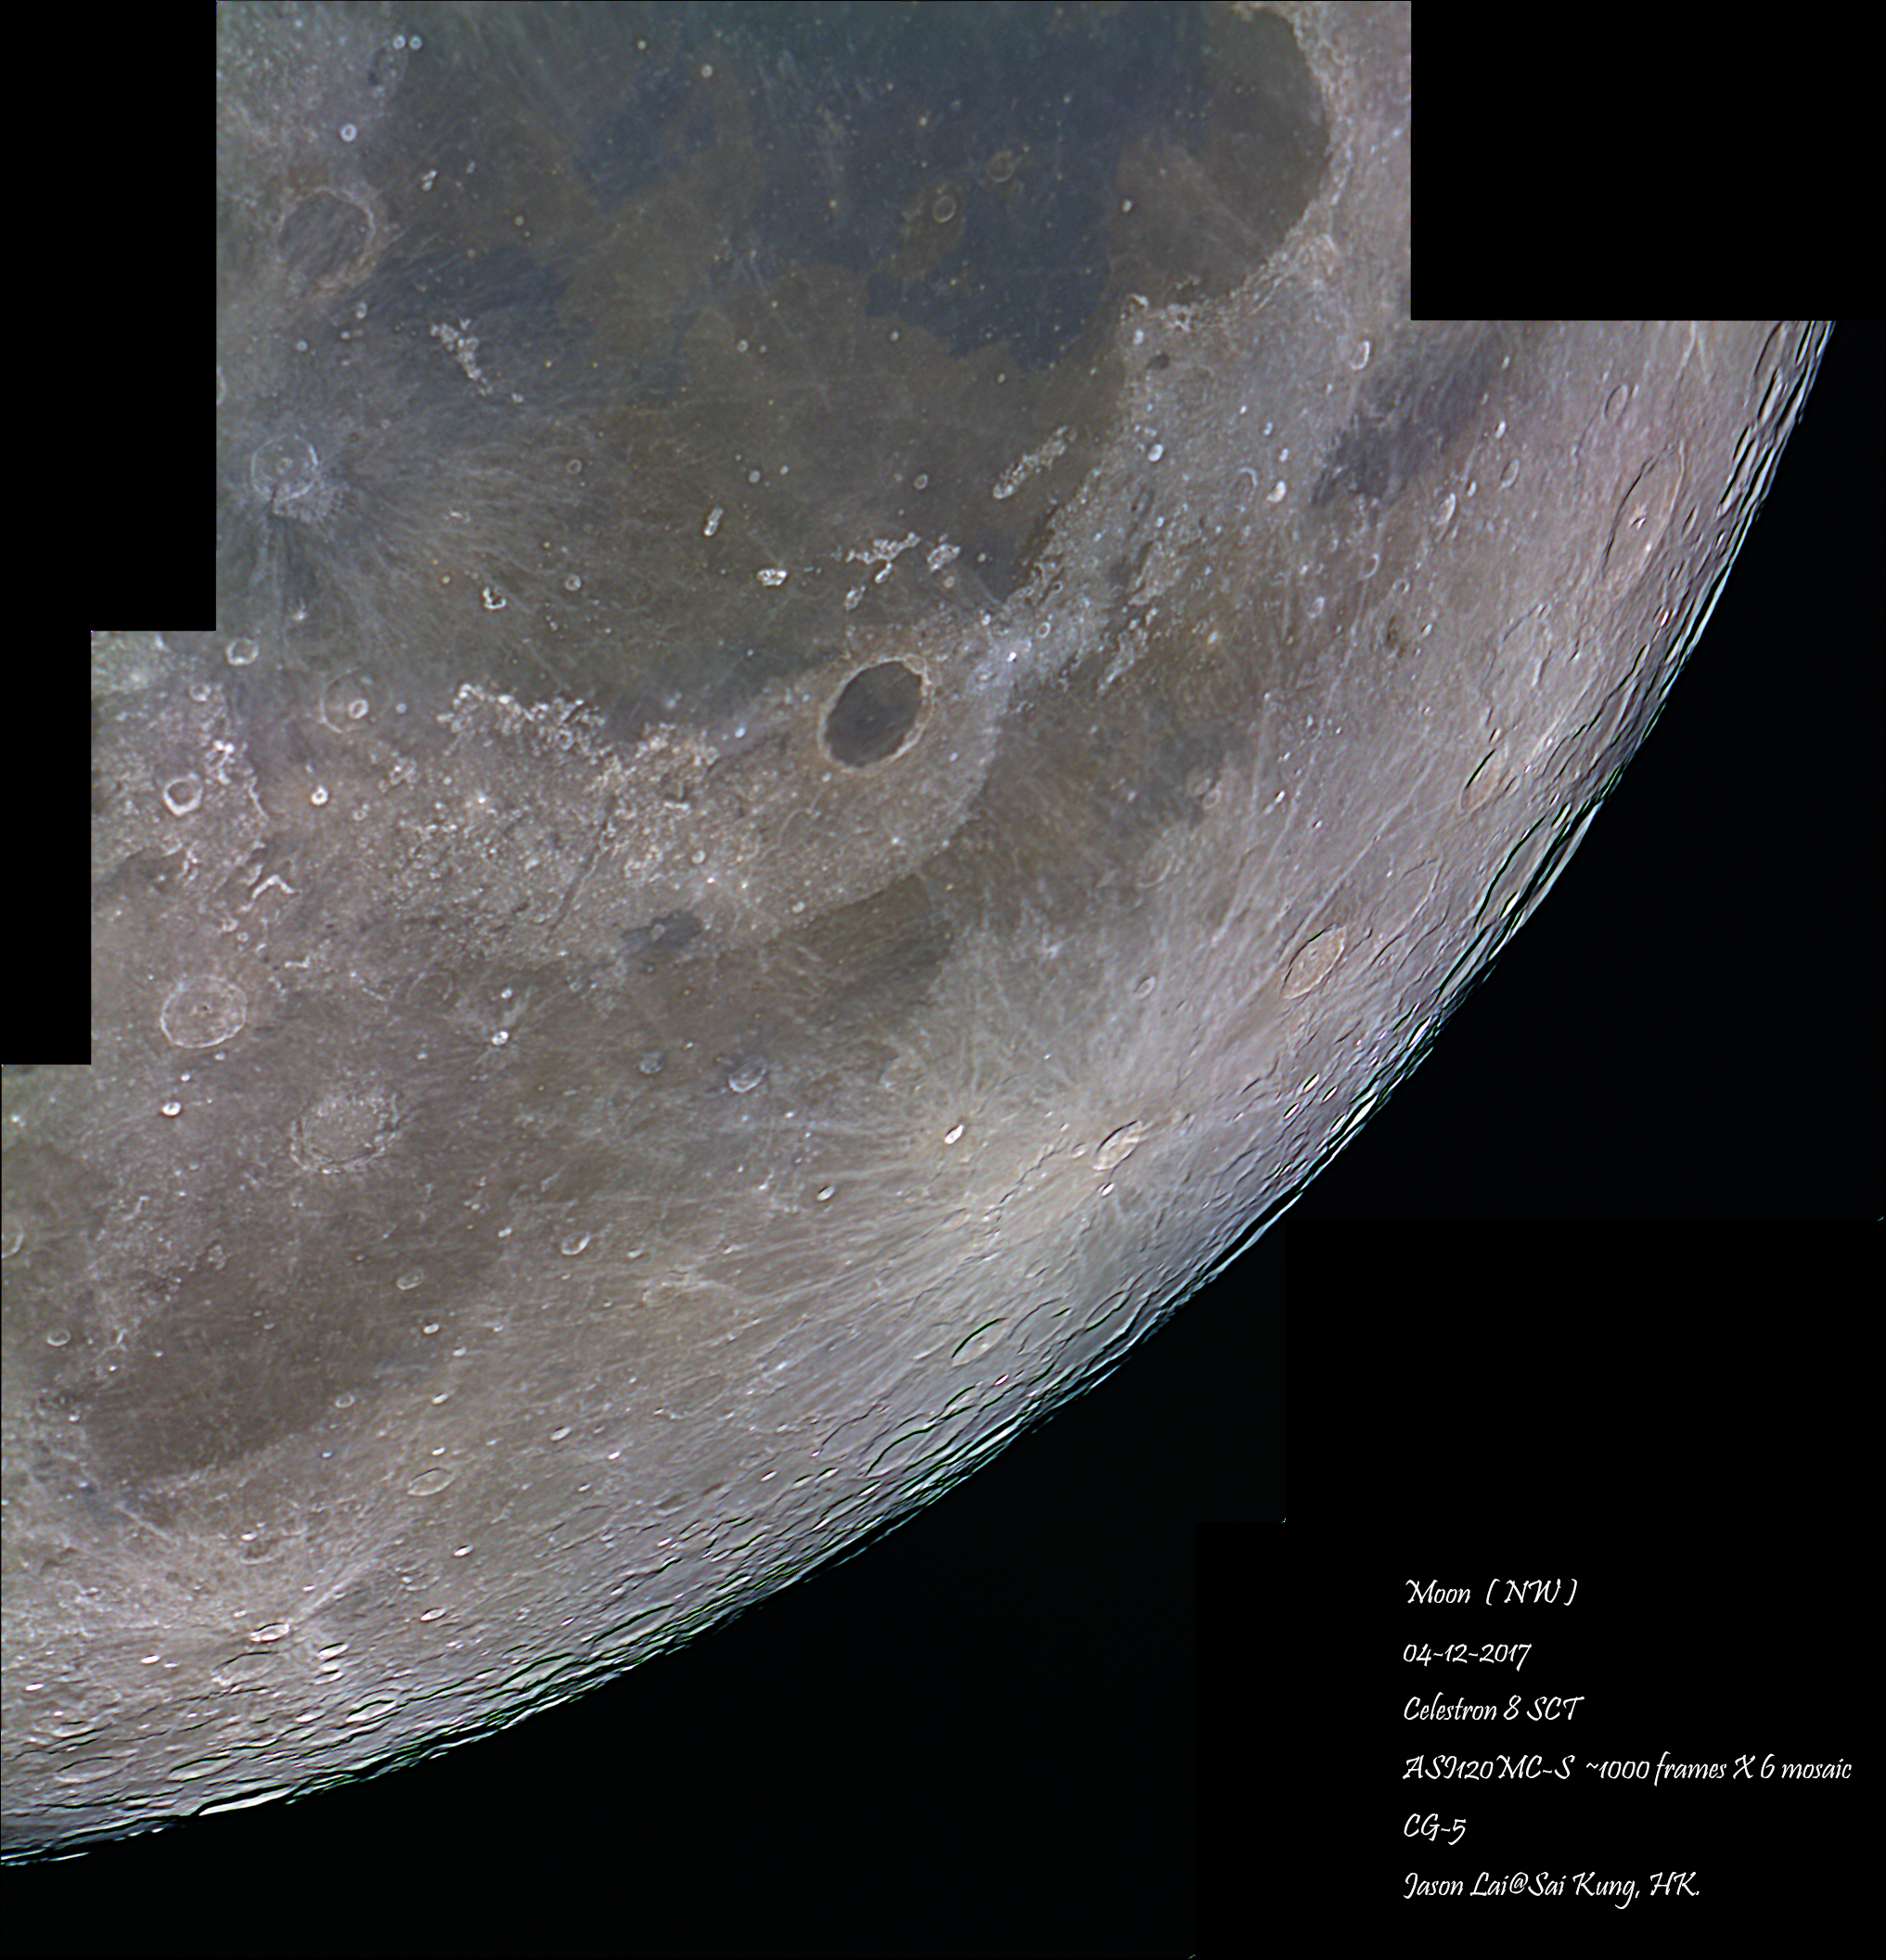 moon03122017_01_06_37_lapl4_ap5826_stitch.jpg